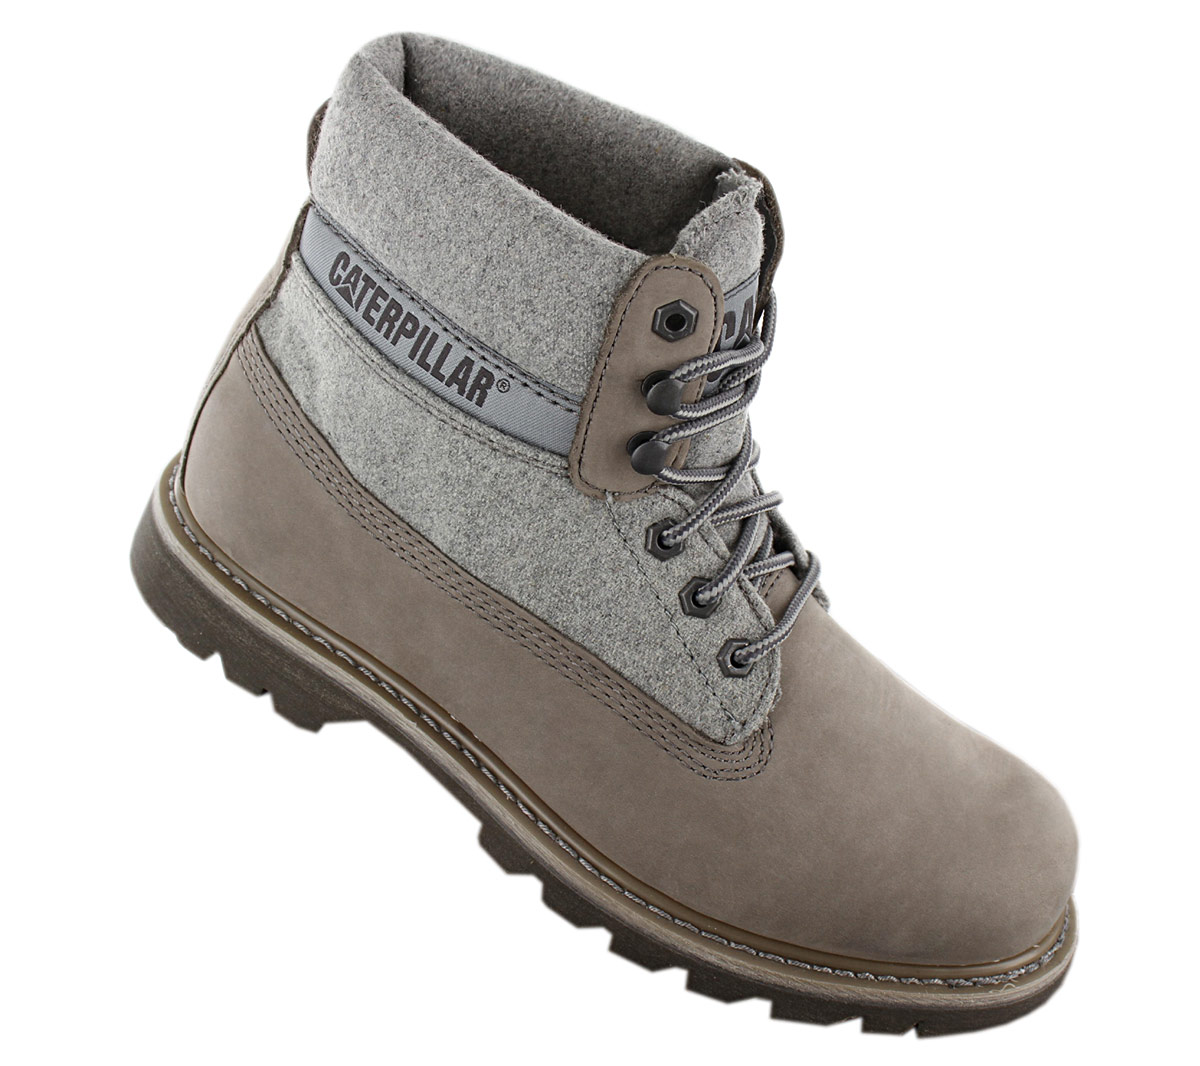 Details about Cat caterpillar Colorado Wool Men's Boots P722966 Winter Boots Leather Shoes